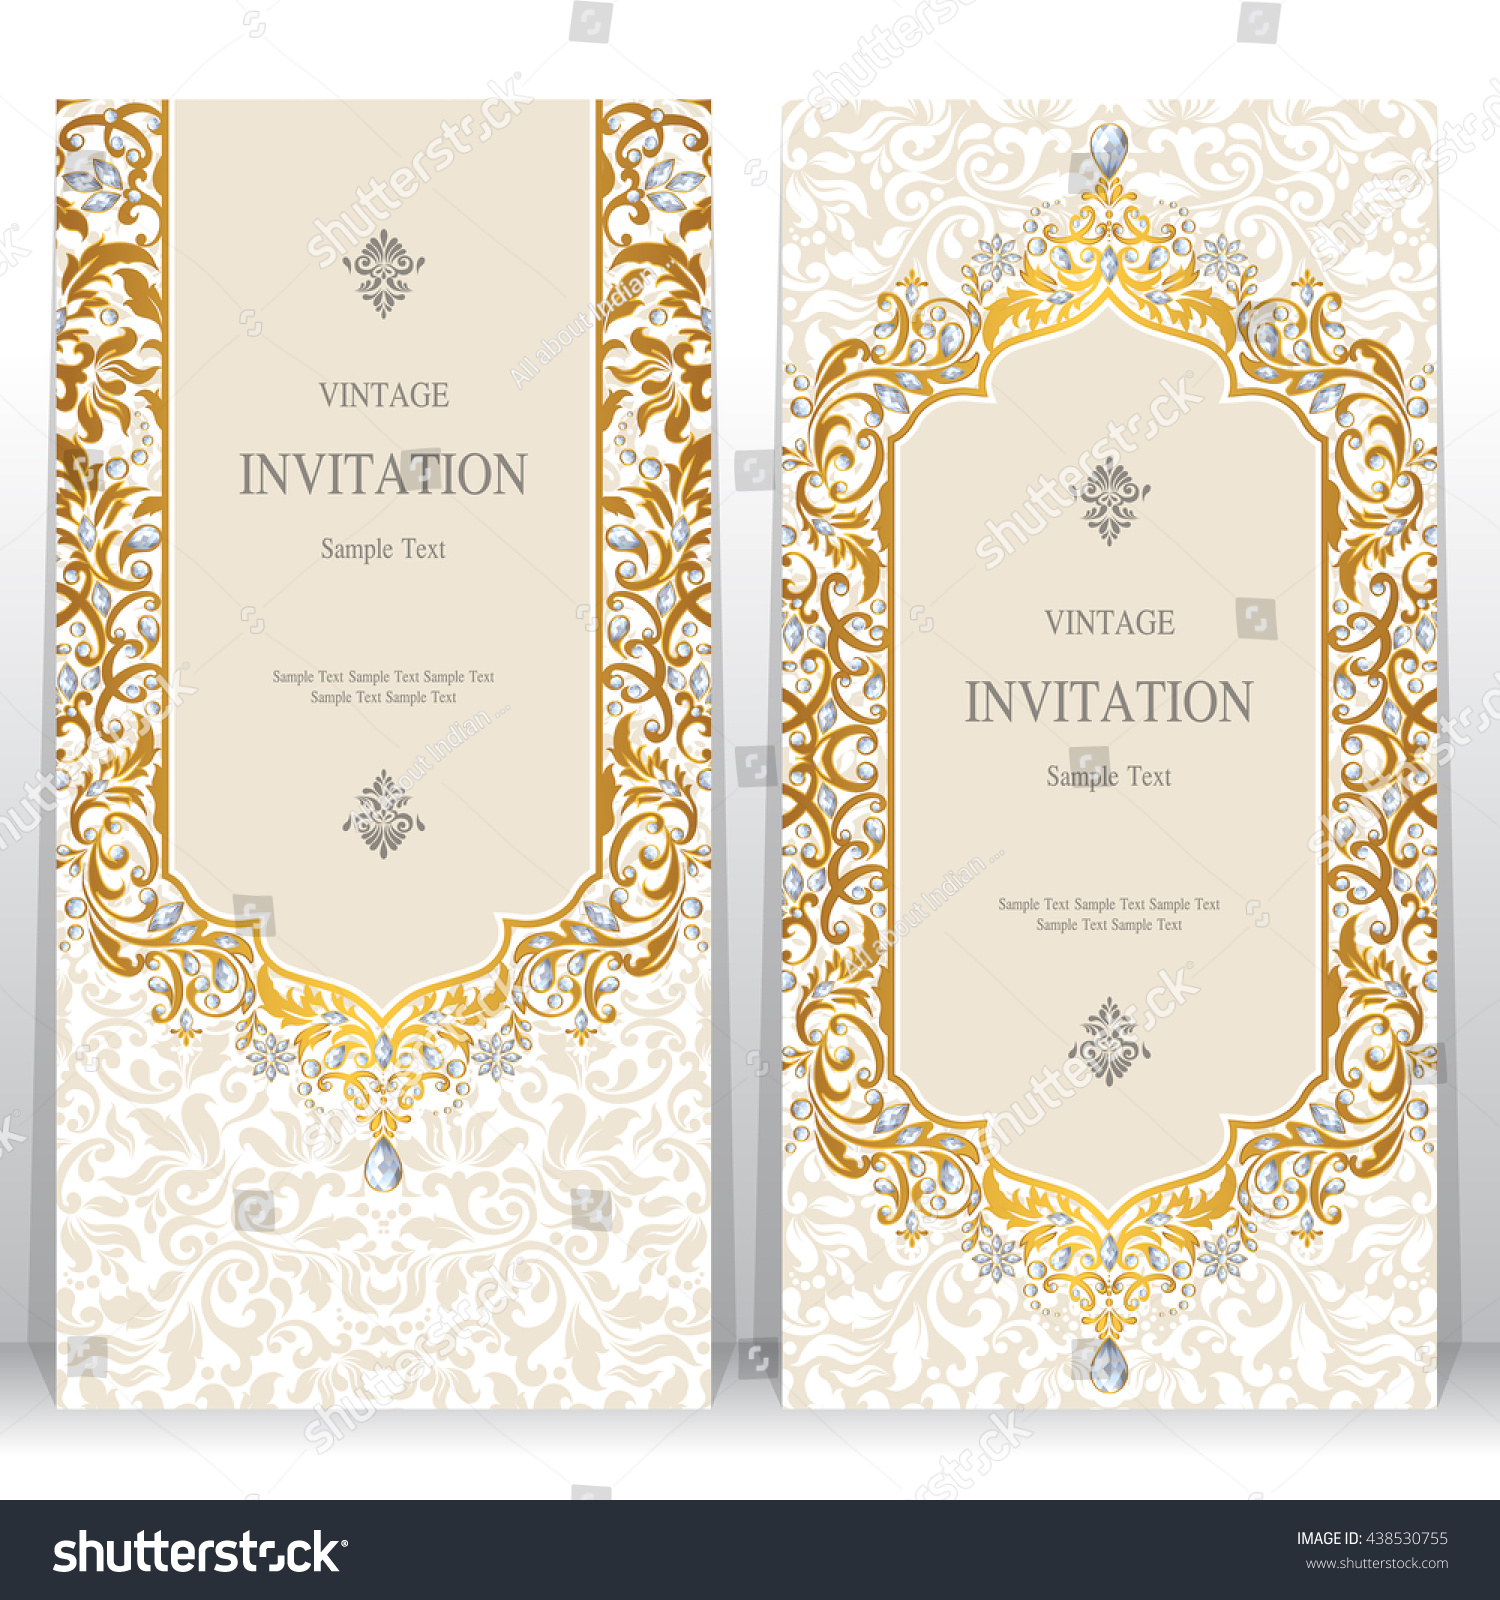 arabic wedding invitations gallery party invitations ideas indian wedding invitation background music yaseen for wedding invitation - Arabic Wedding Invitations